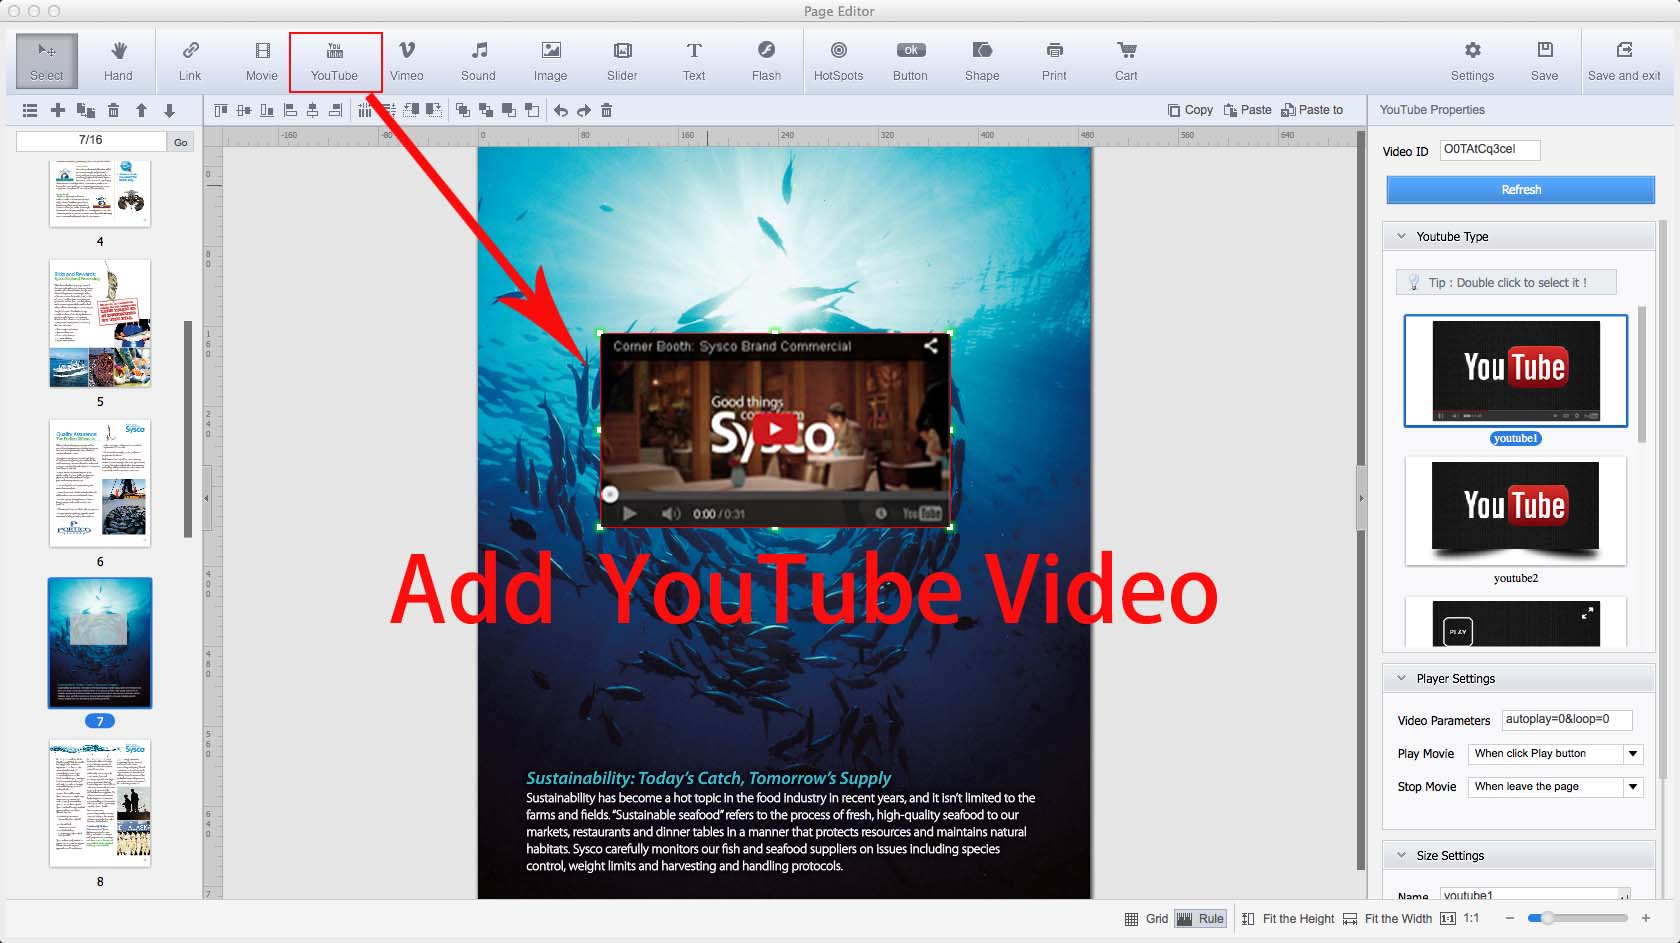 Flip pdf pro for mac convert pdf to digital books with page turn click edit pages at the top left then you can add video including youtube vimeo video audio flash images links text shape button fandeluxe Choice Image